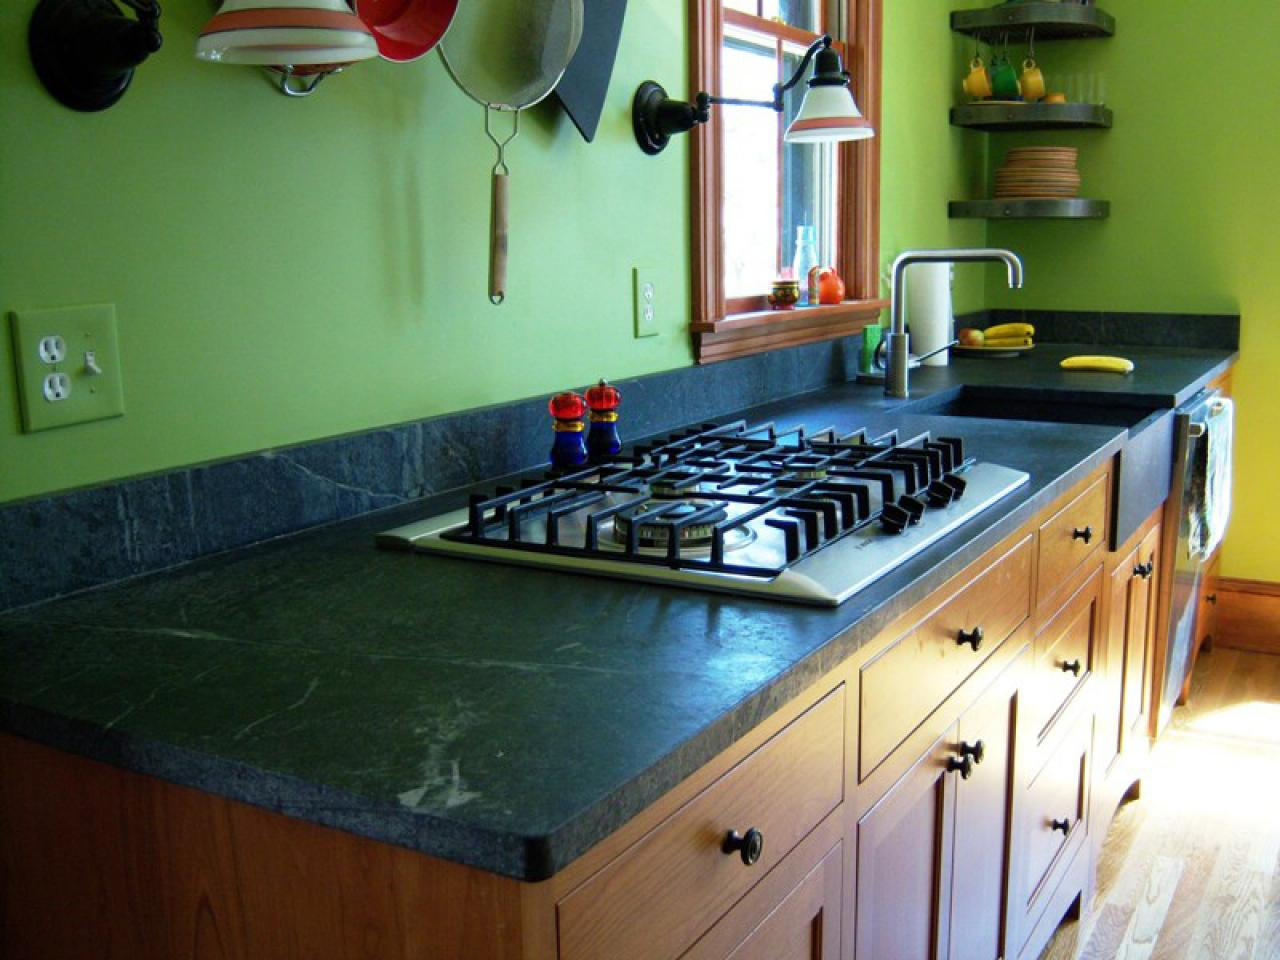 Uncategorized Soapstone Kitchen Countertops soapstone kitchen countertops hgtv countertops